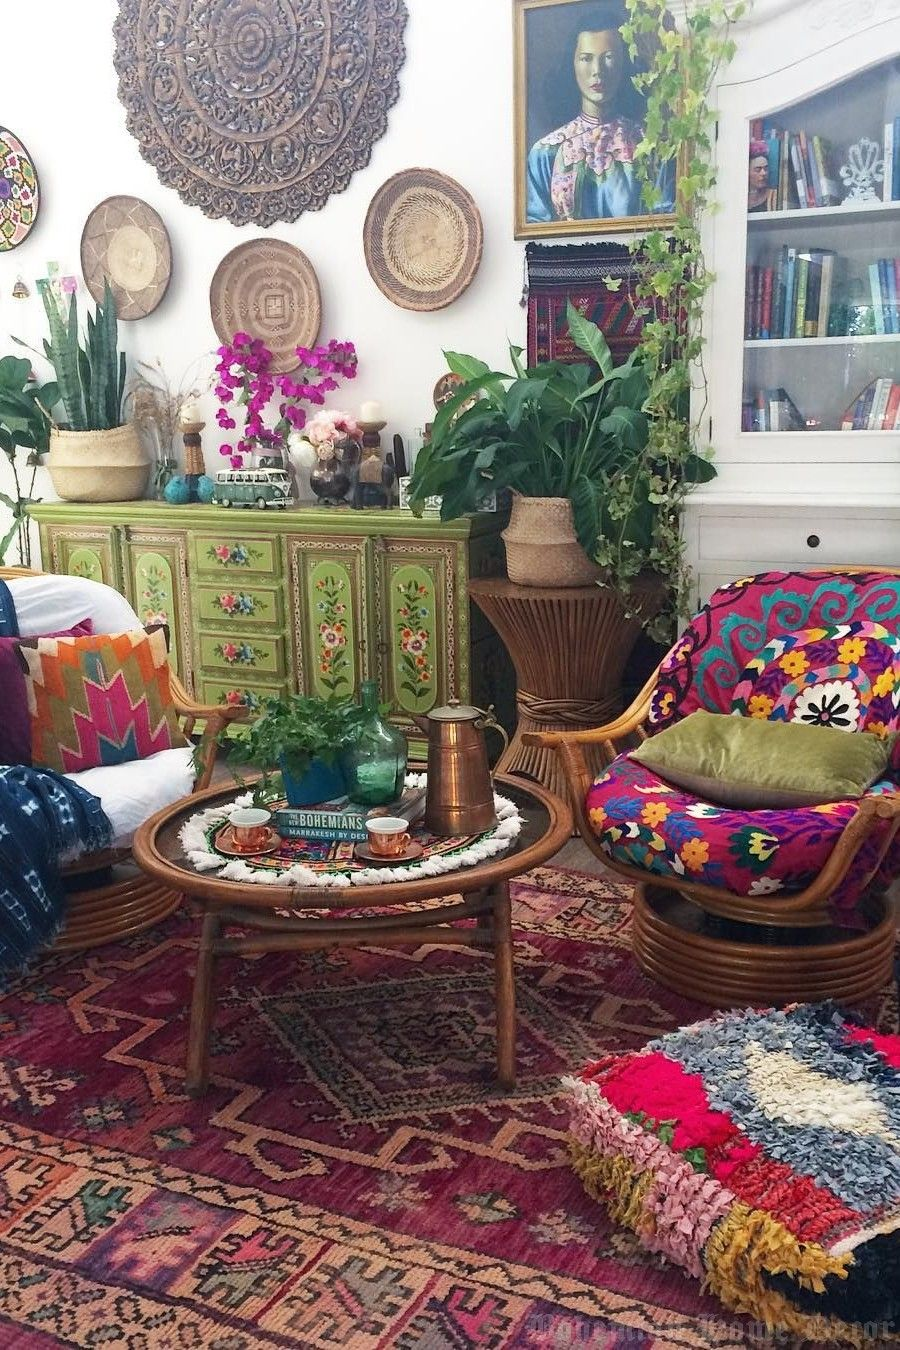 What Do You Want Bohemian Home Decor To Become?